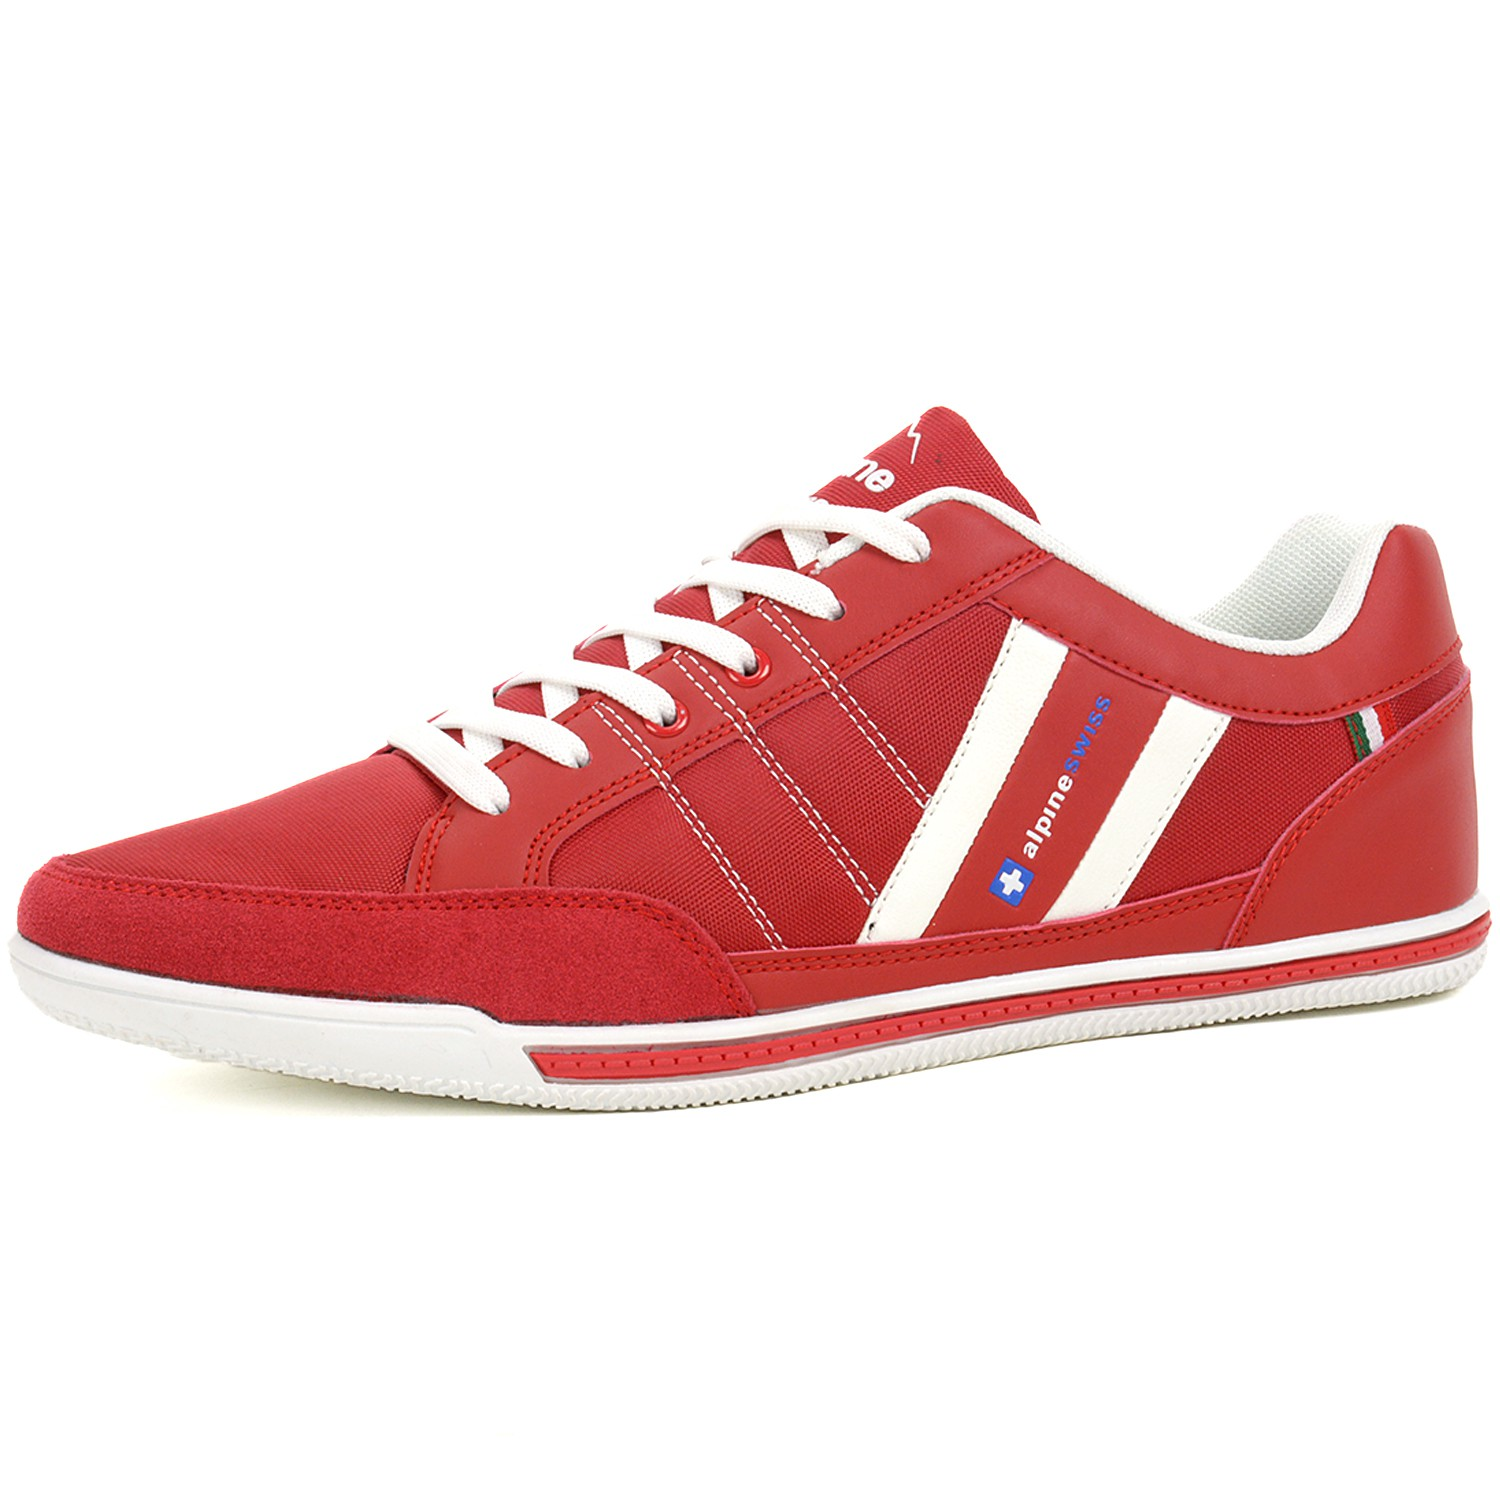 All Red Womens Tennis Shoes